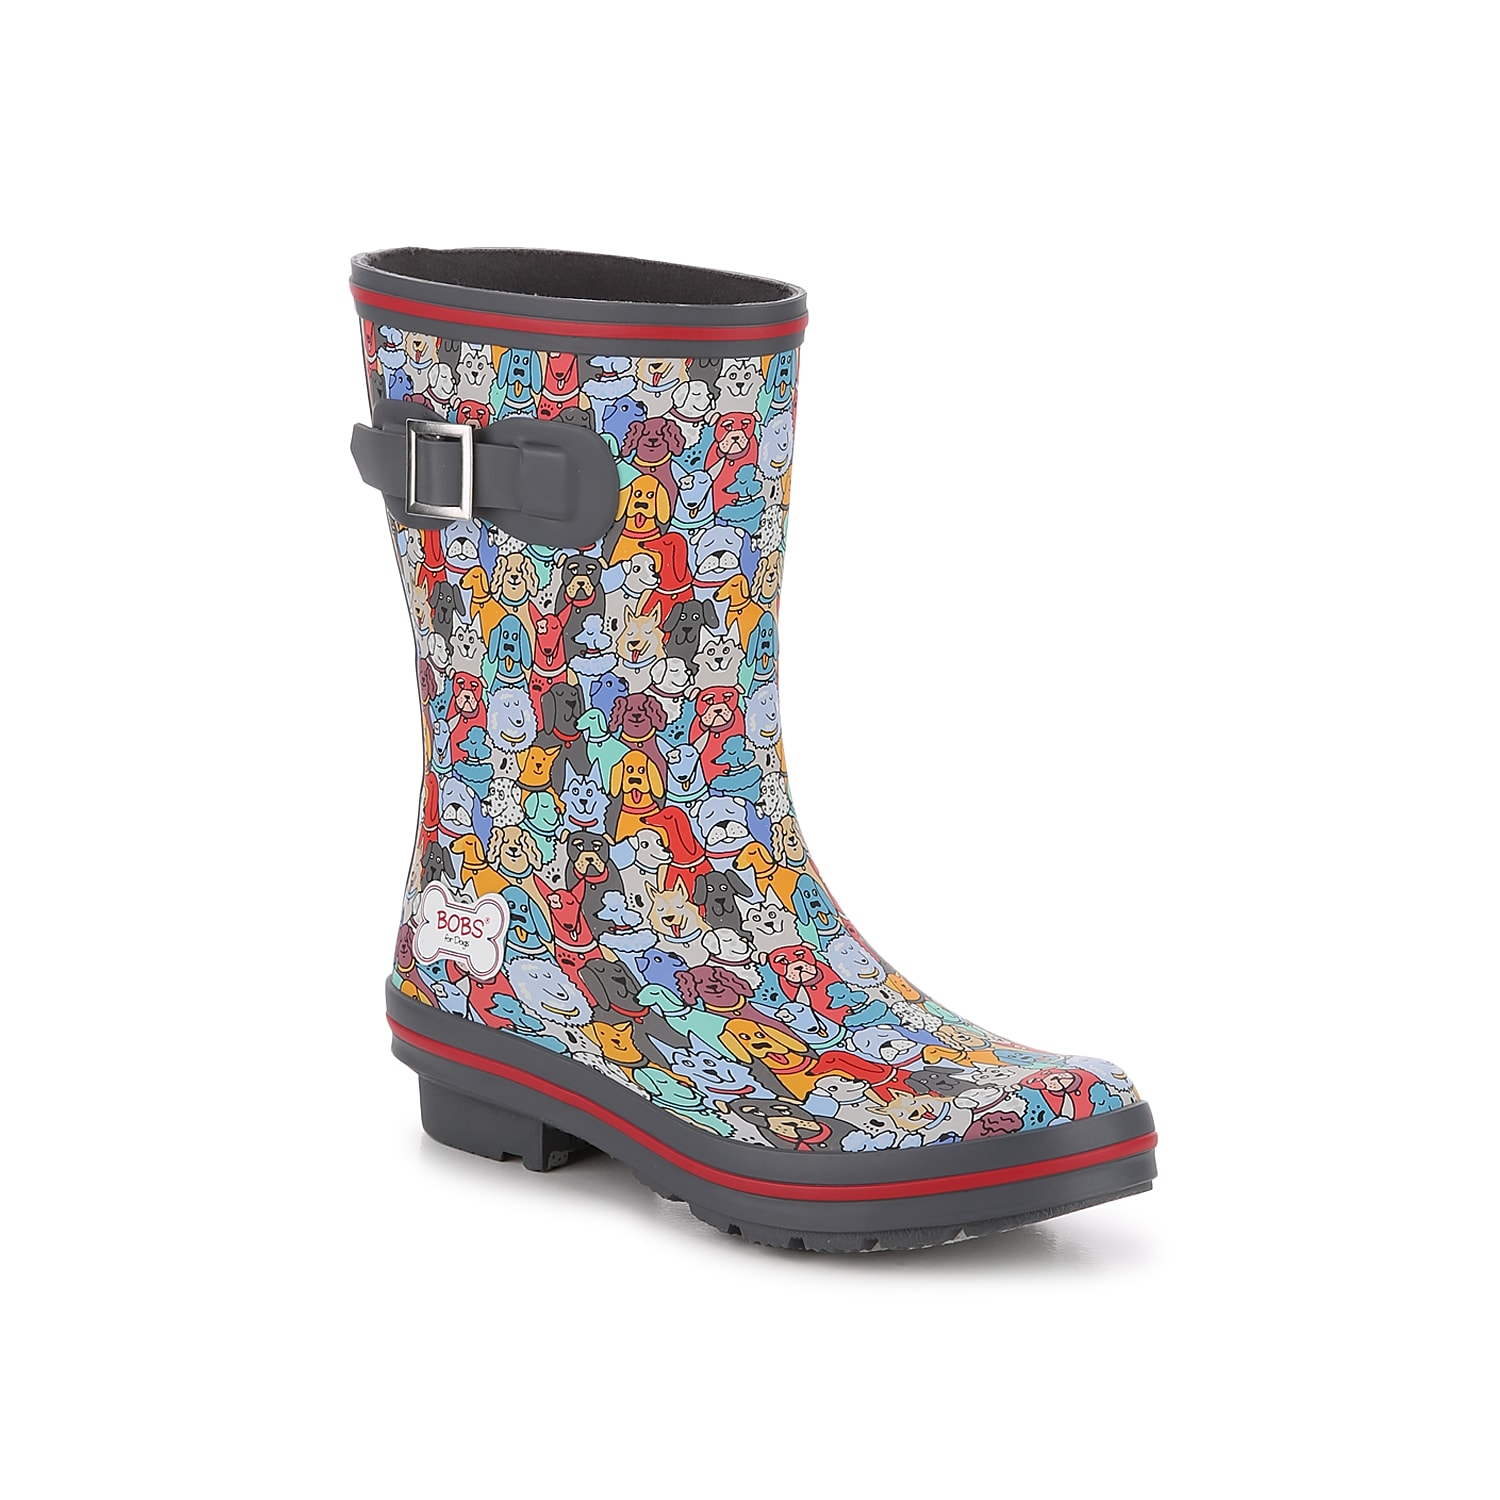 Don\\\'t be afraid to splash in that puddle with the Rain Check April Showers rain boot from Skechers Bobs. This fun waterproof boot features a colorful dog print to brighten gloomy days! Click here for Boot Measuring Guide.